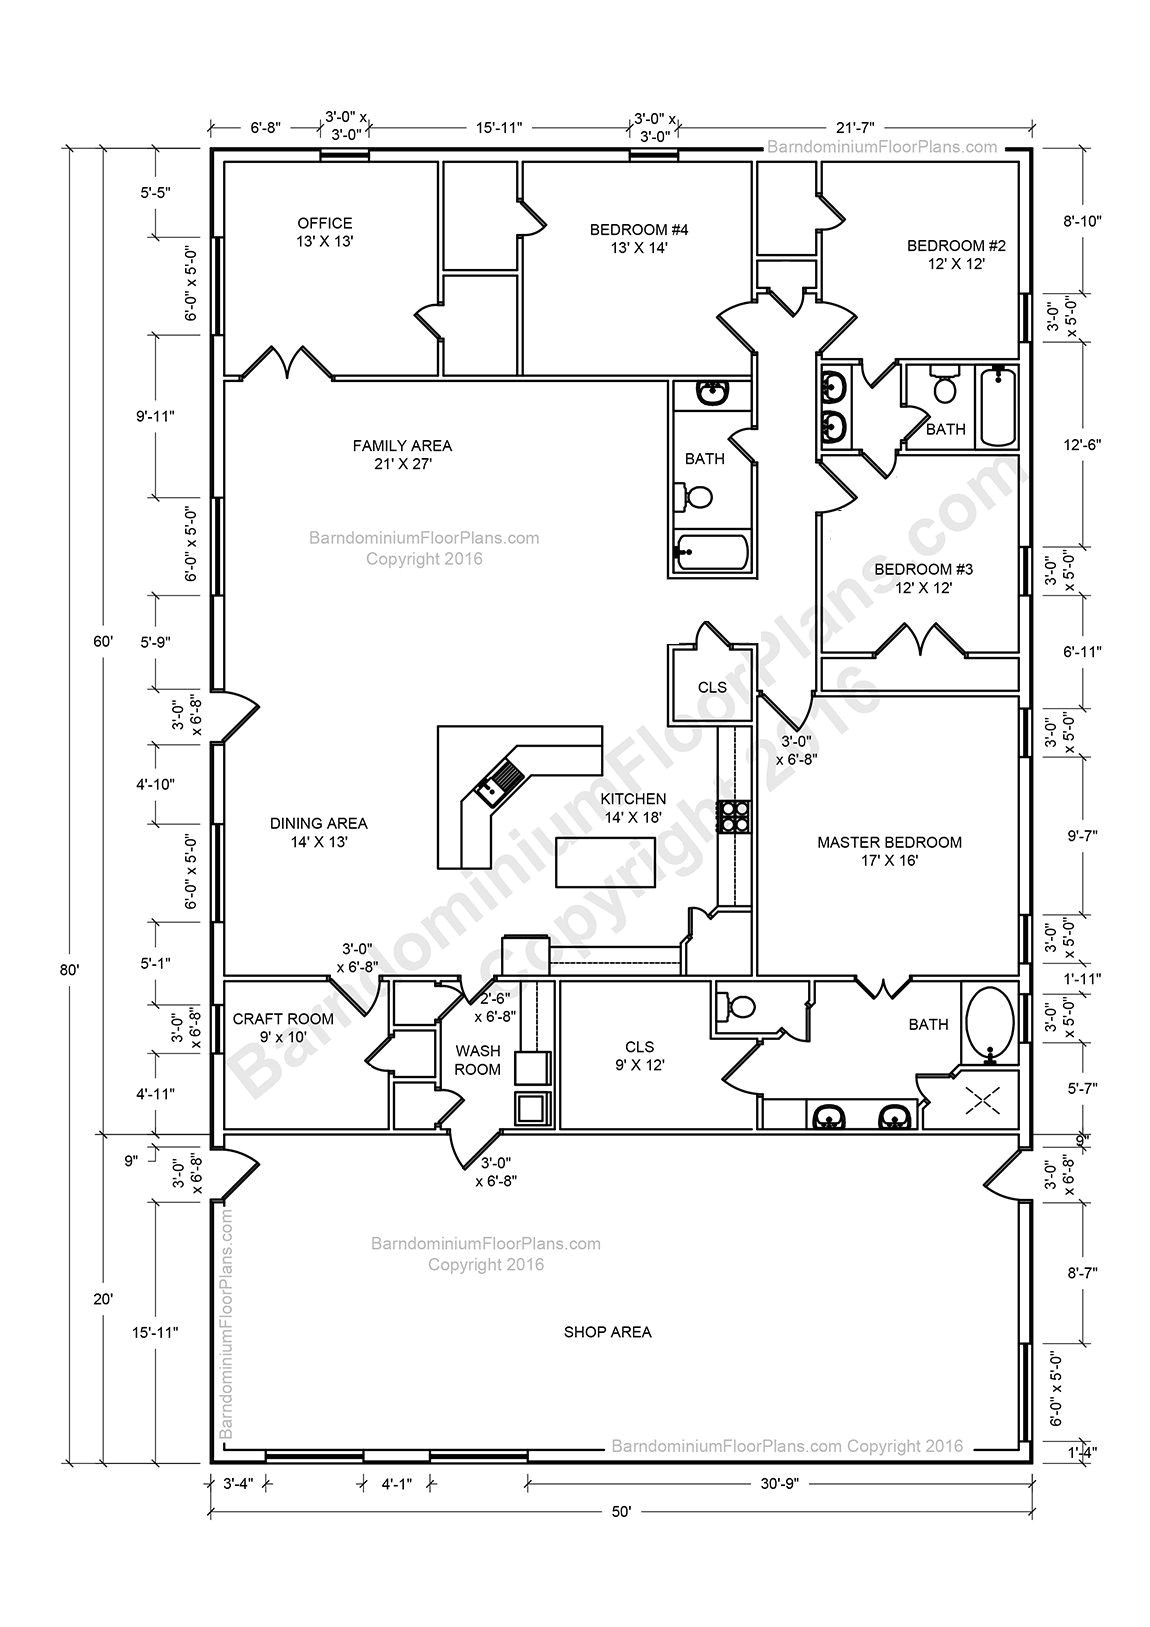 The New Ultimate Book Of Home Plans Pdf Ultimate Book Of Home Plans the New Shoestolose Com